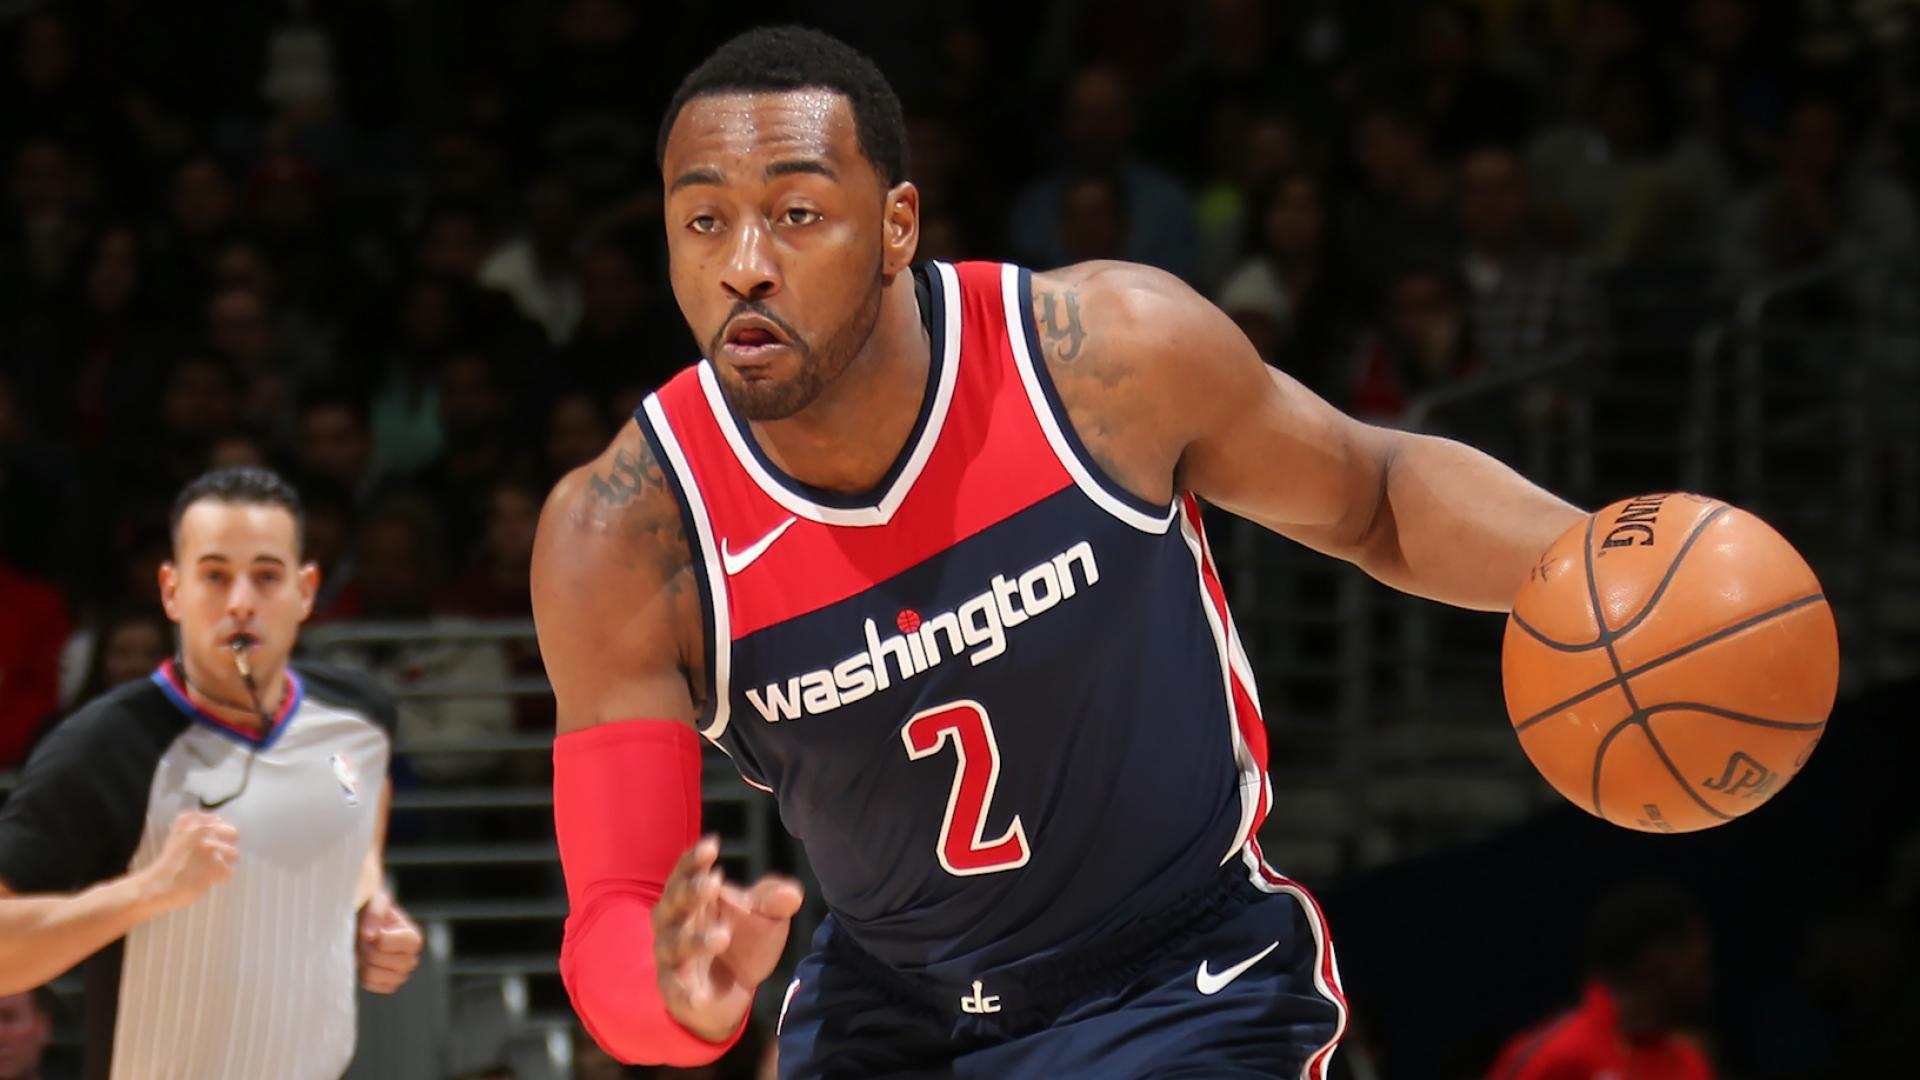 Washington Wizards' John Wall Out 2 Months